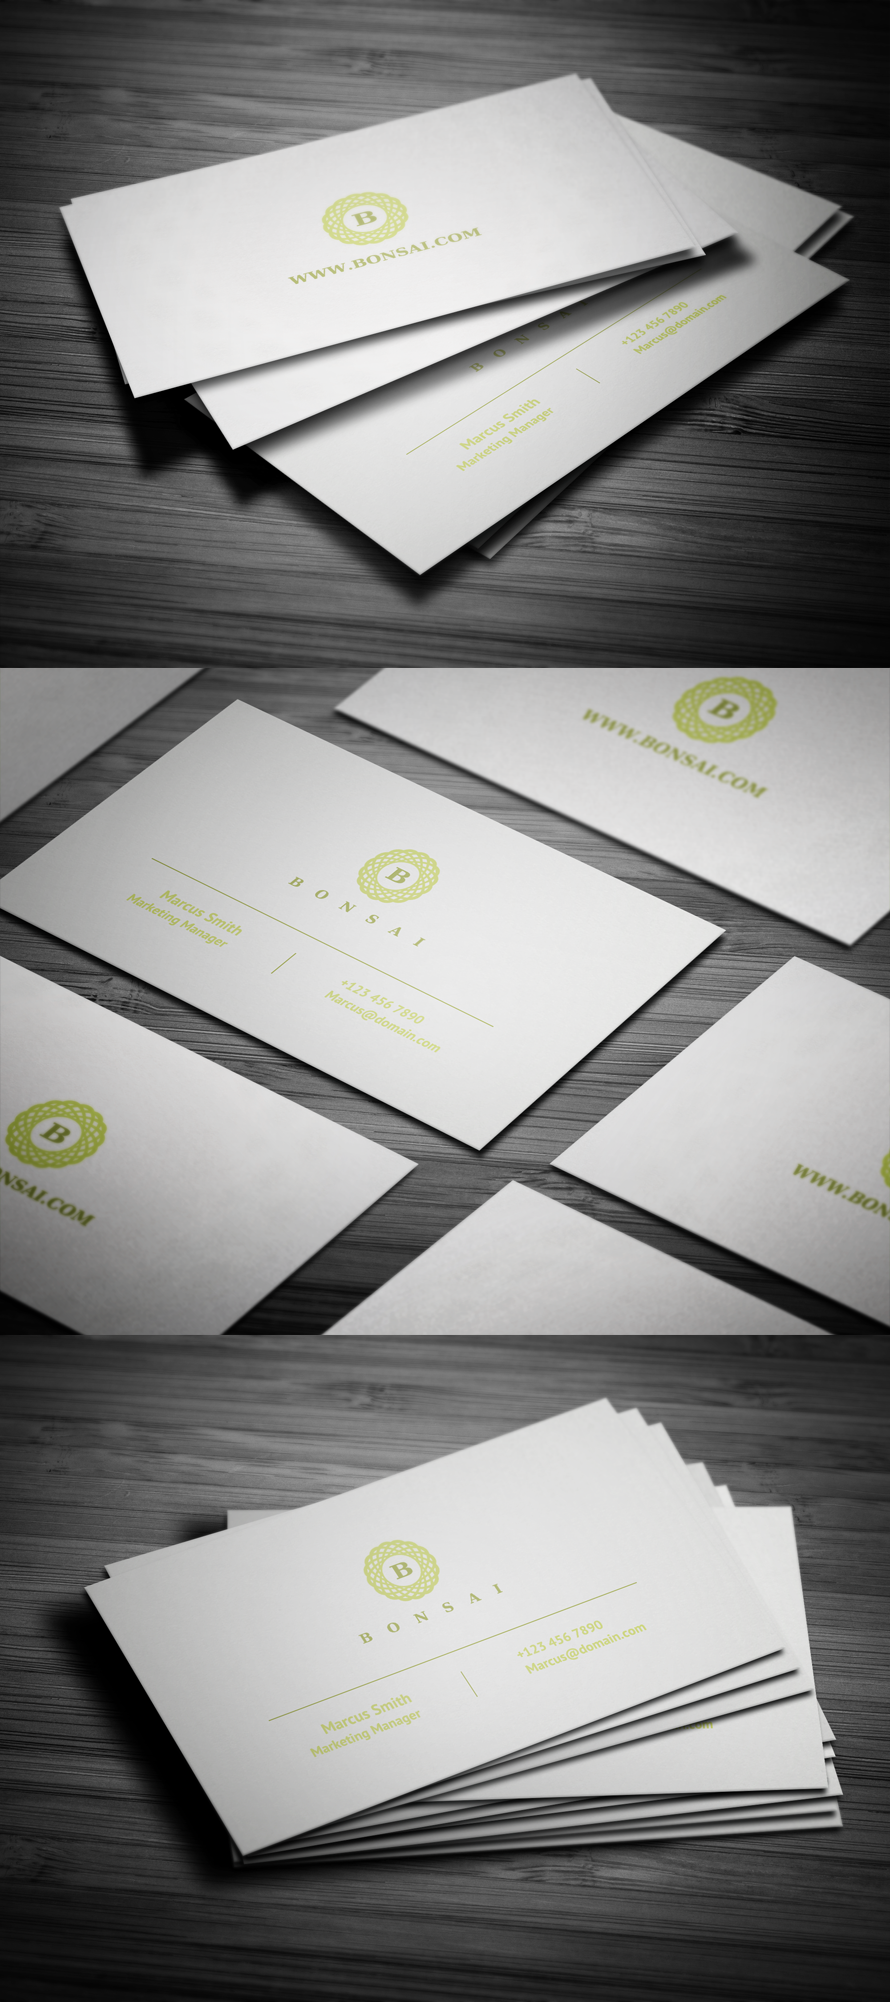 Clean and simple business cards templates available for free clean and simple business cards templates available for free download in psd format with features 35 x 2 inches dimensions 300 dpi high resolution wajeb Gallery